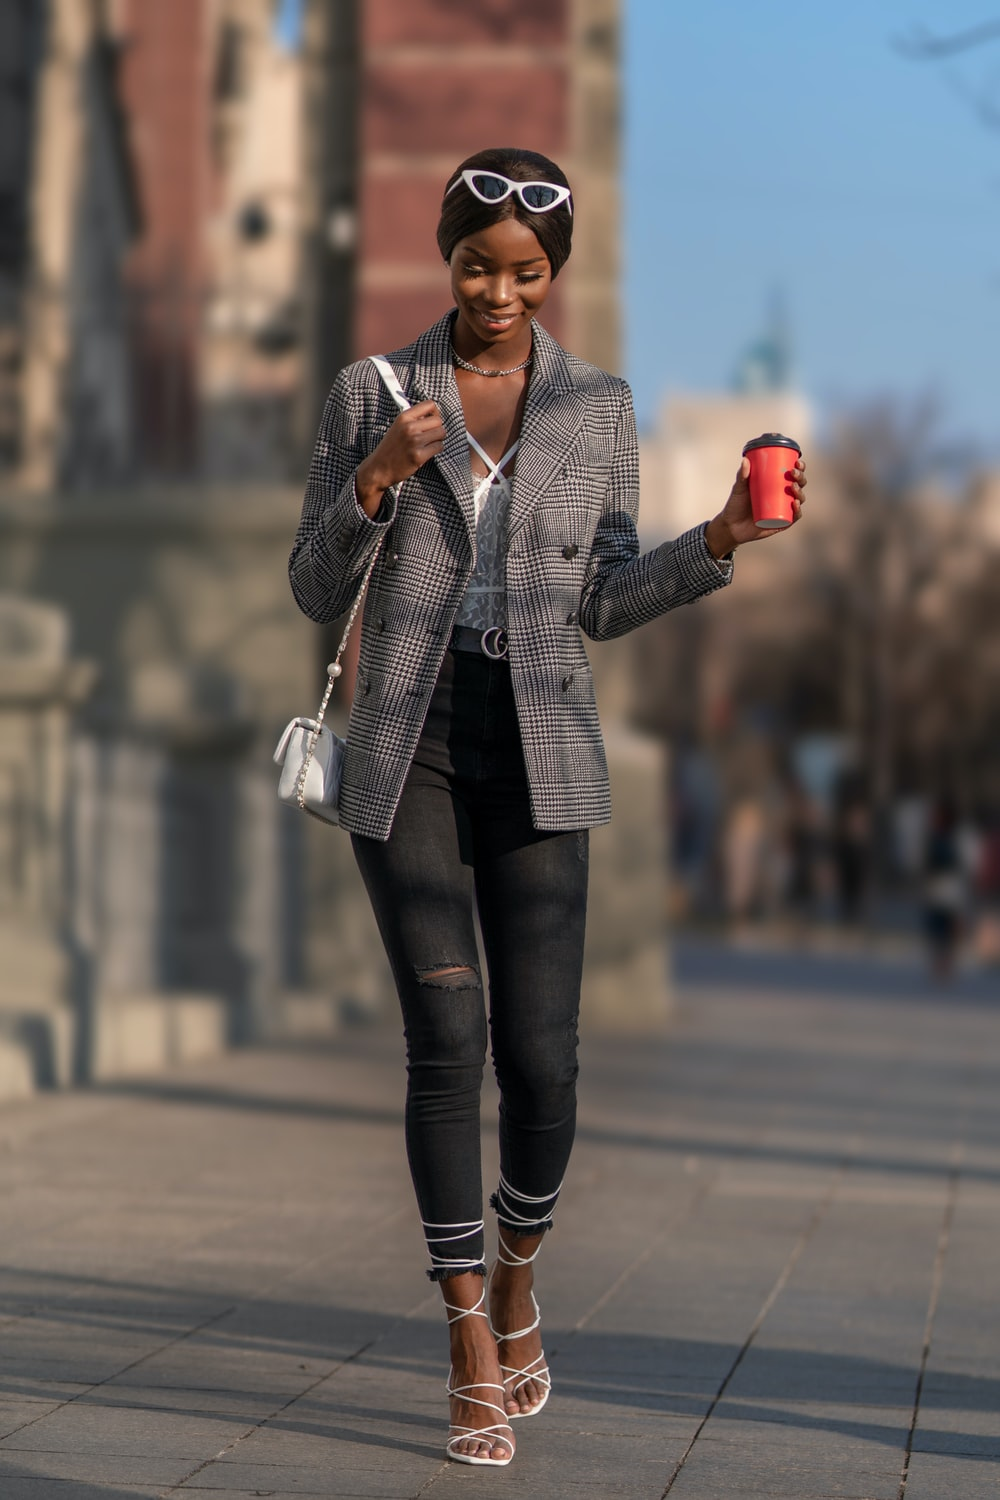 woman in gray blazer and black pants standing on road during daytime